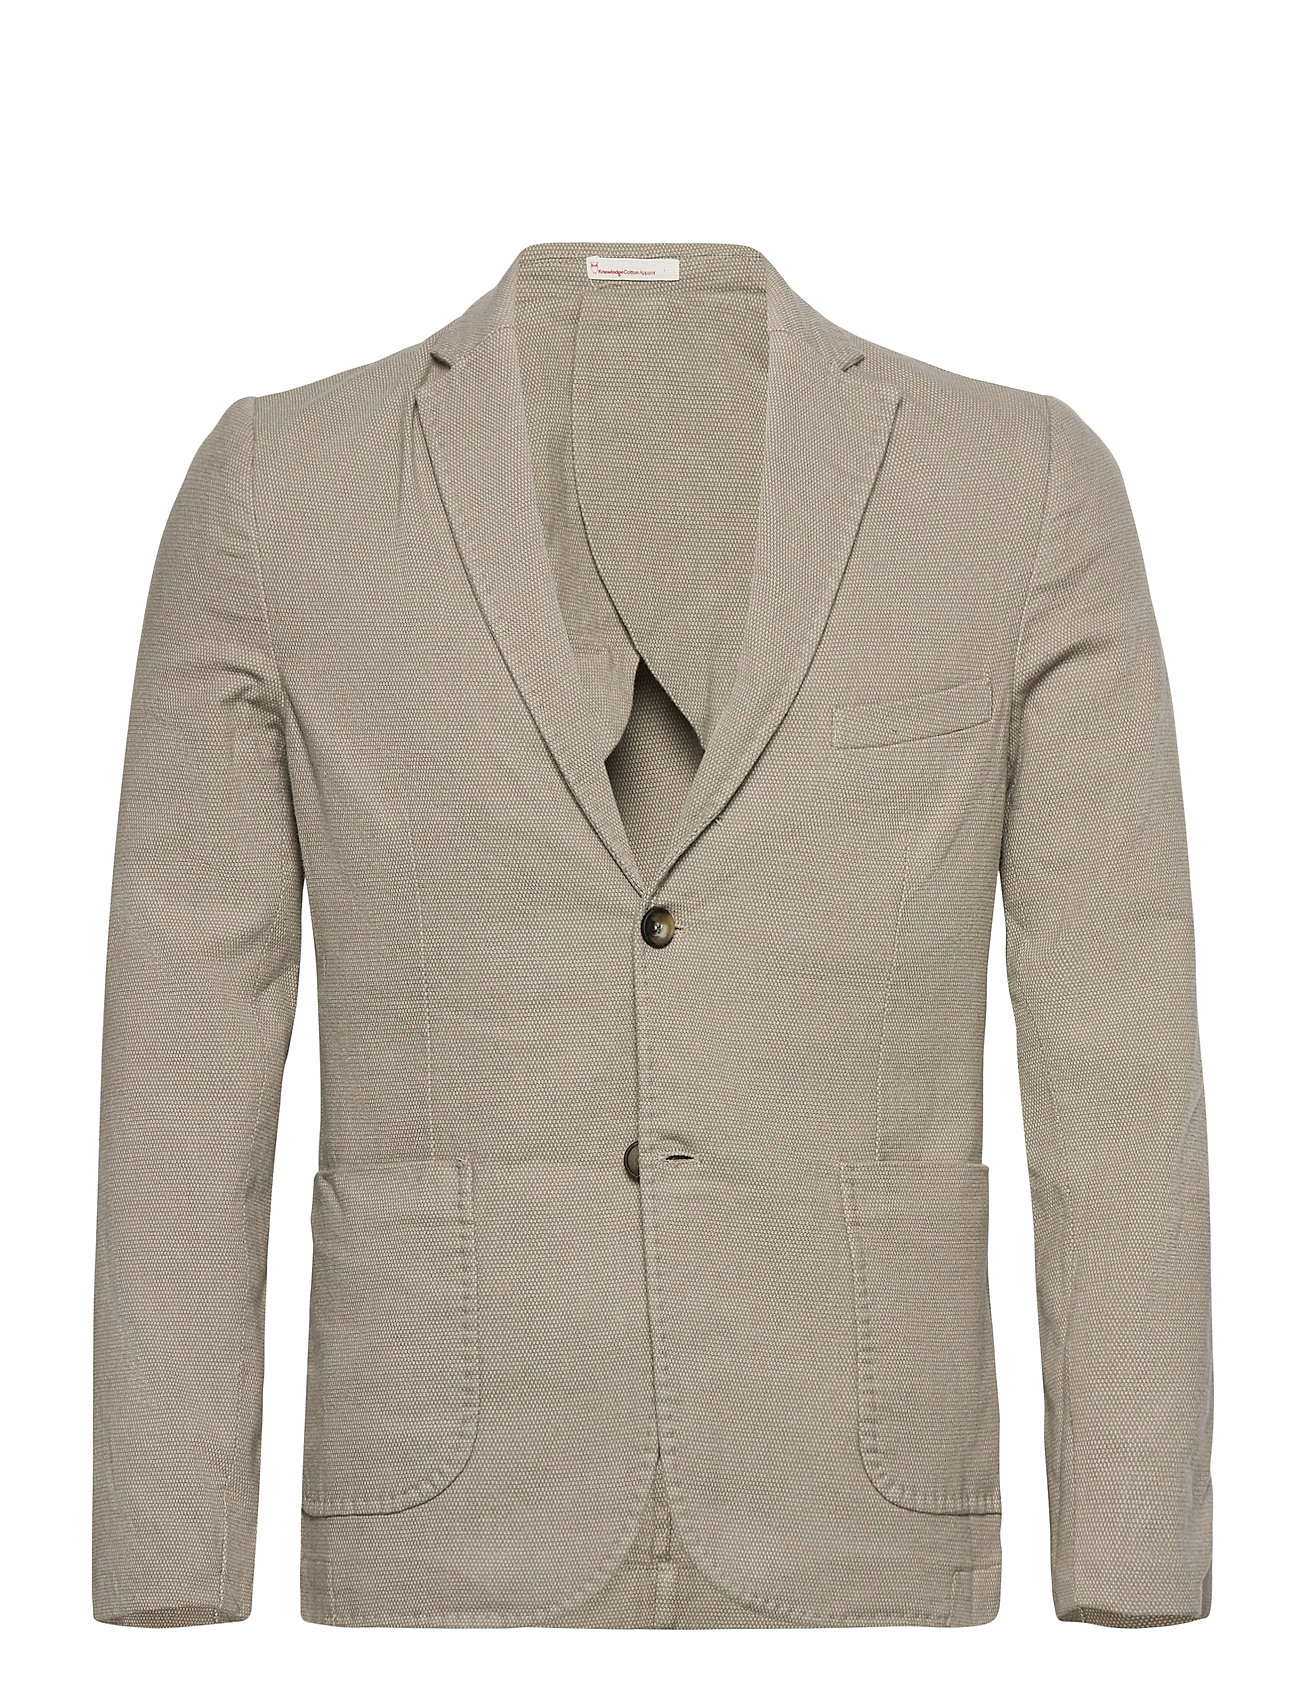 Image of Structured Blazer Blazer Jakke Beige Knowledge Cotton Apparel (3472134693)